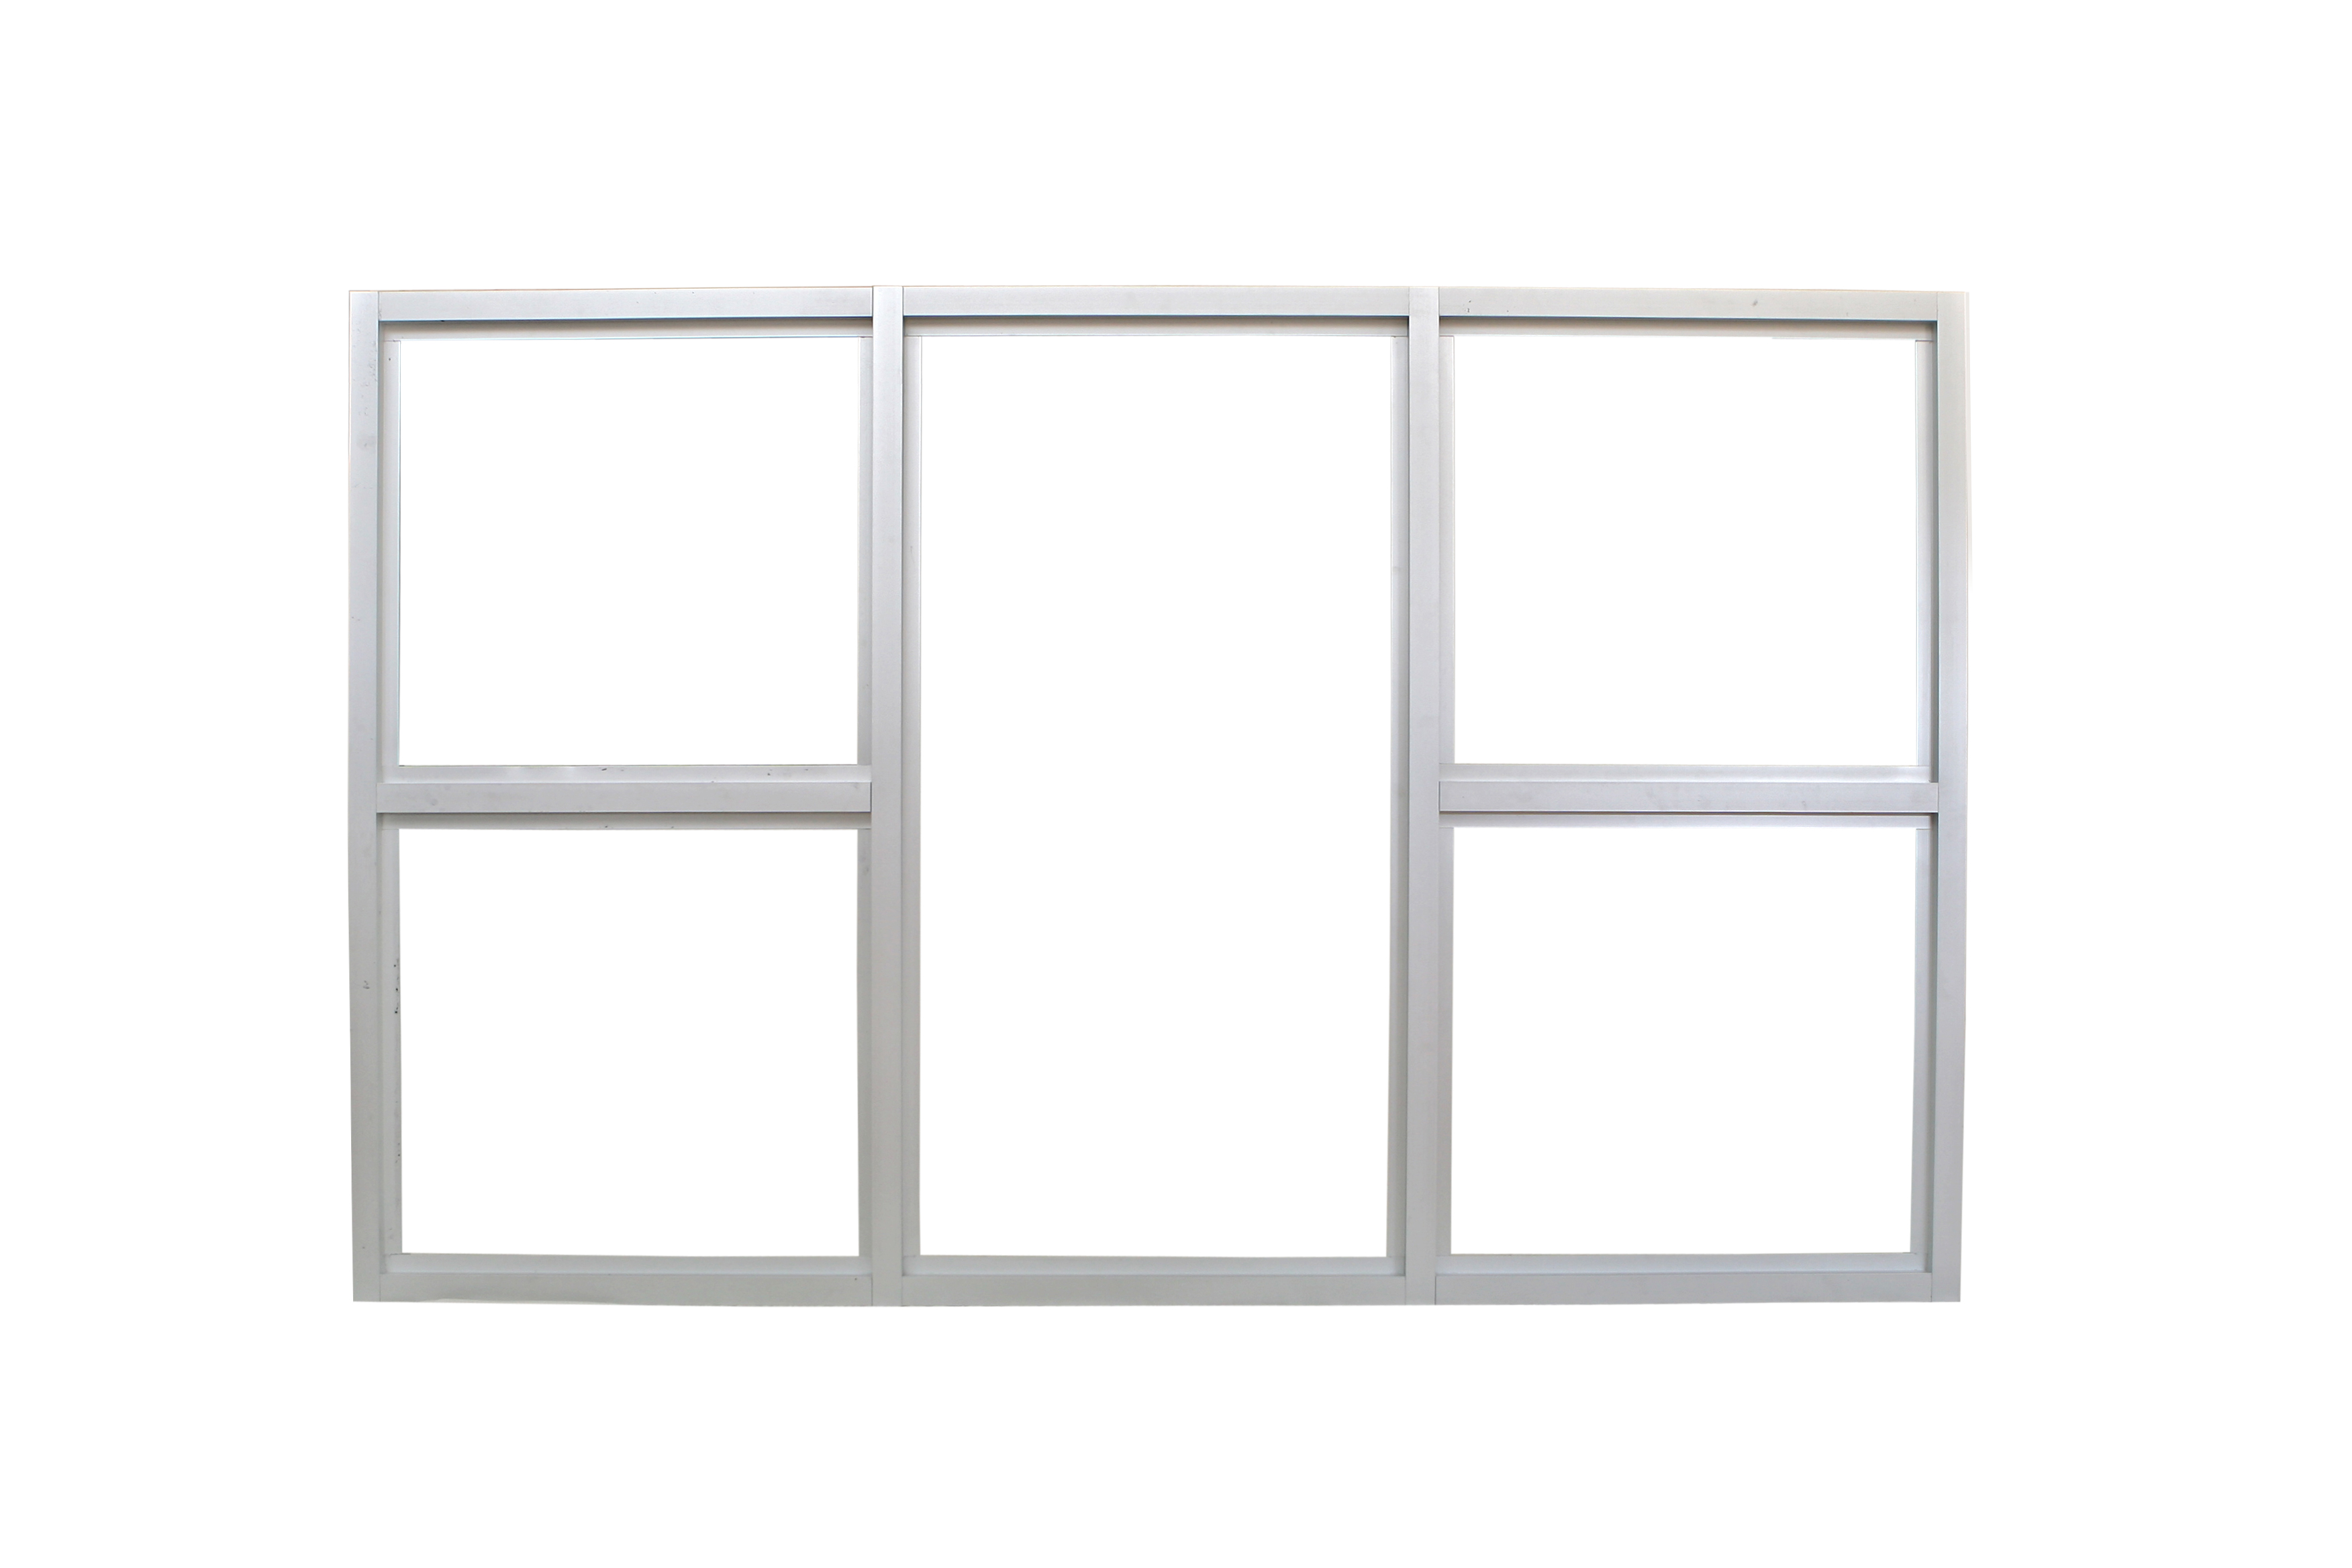 Window System SS3500 Storefront Picture Impact Resistant